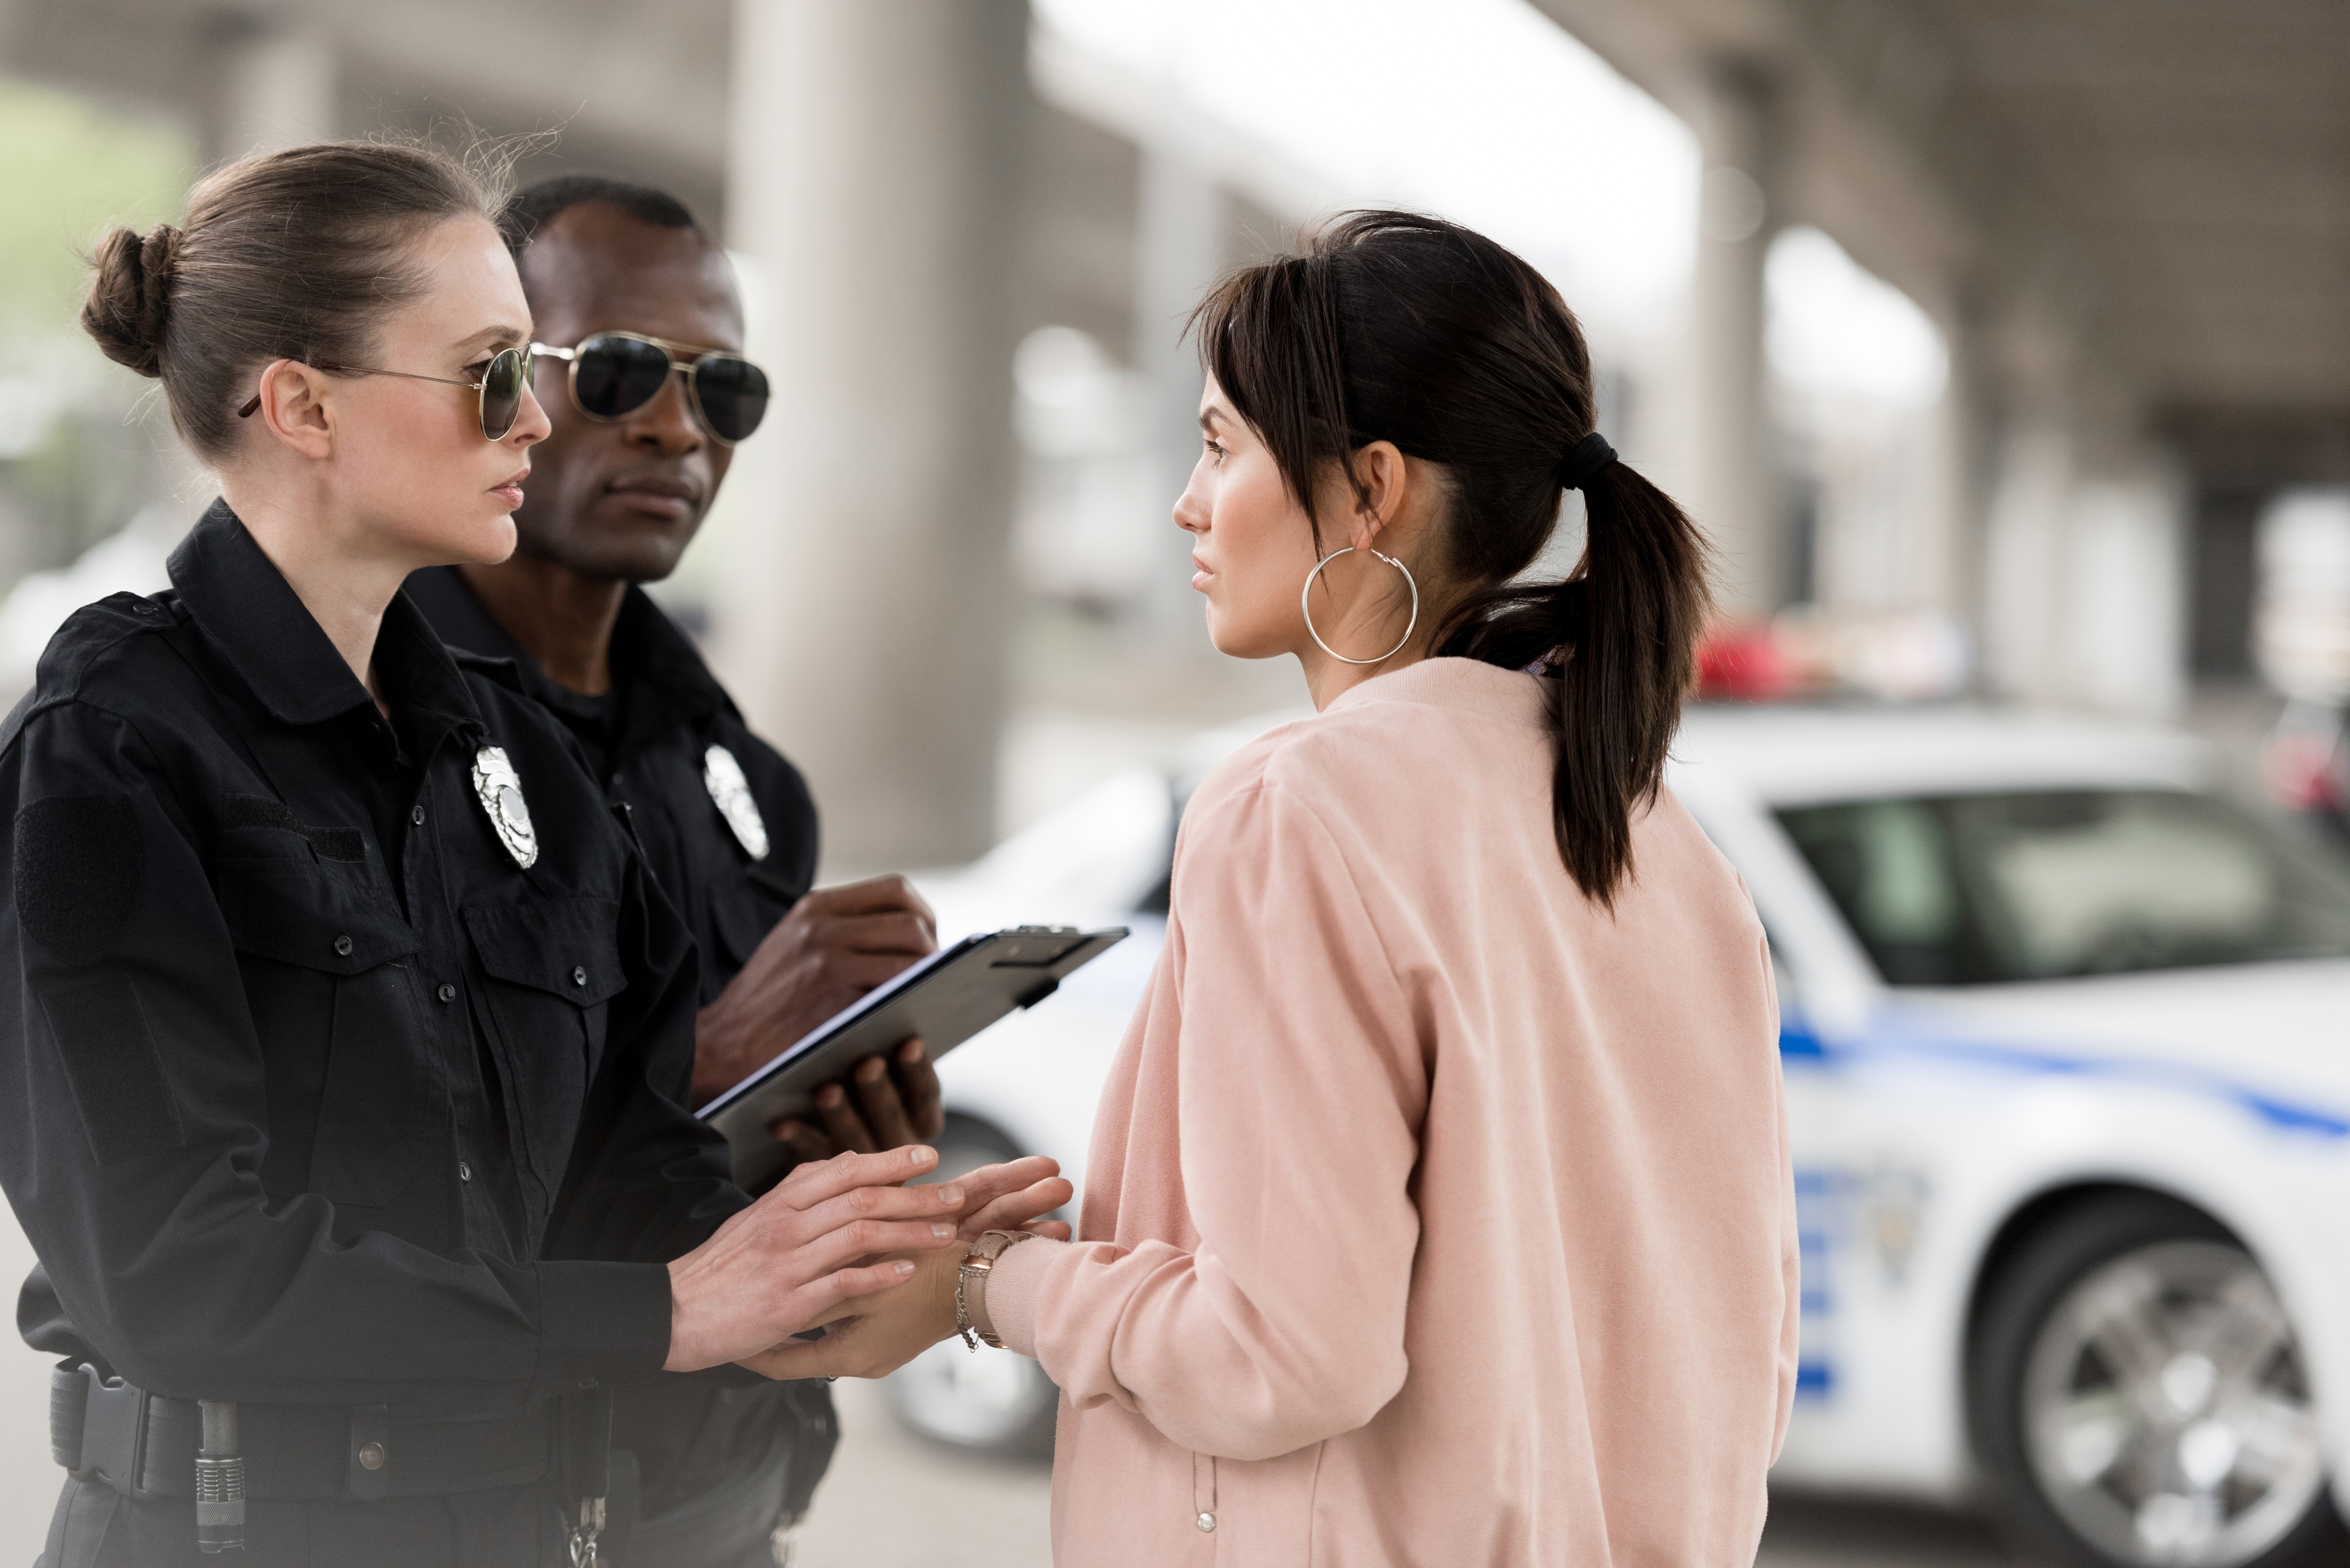 Stock photo - Officers with woman